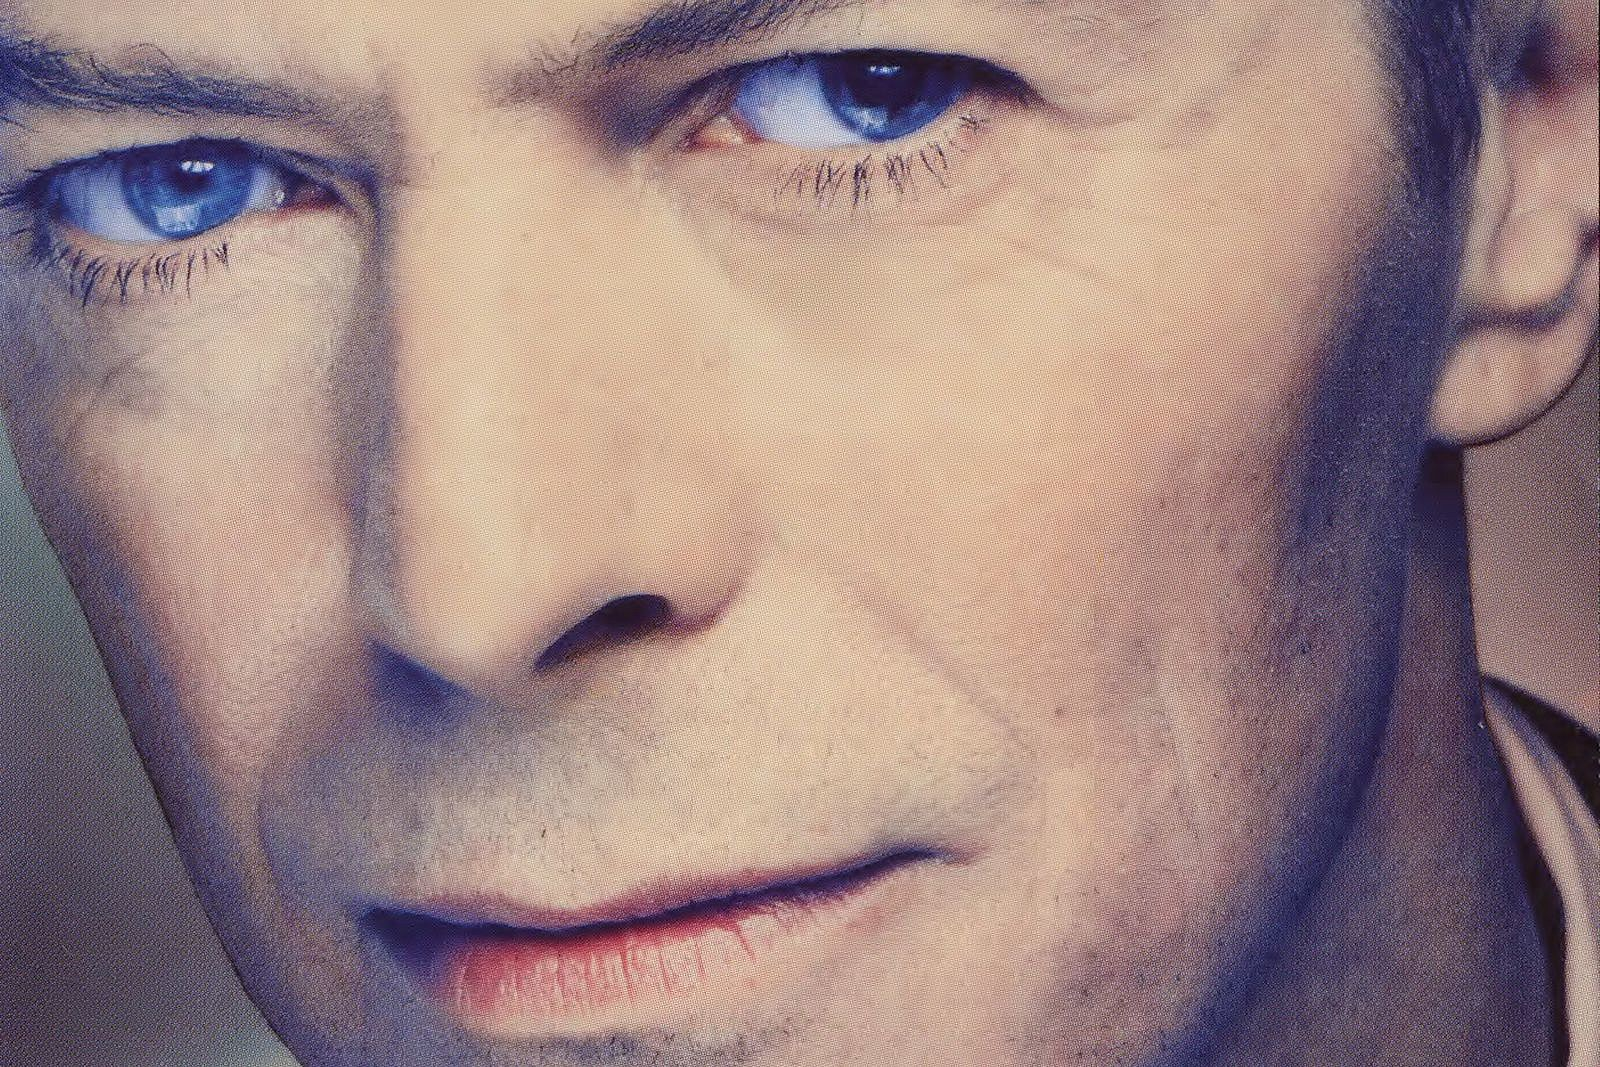 25 Years Ago: David Bowie Opens Up on 'Black Tie White Noise'